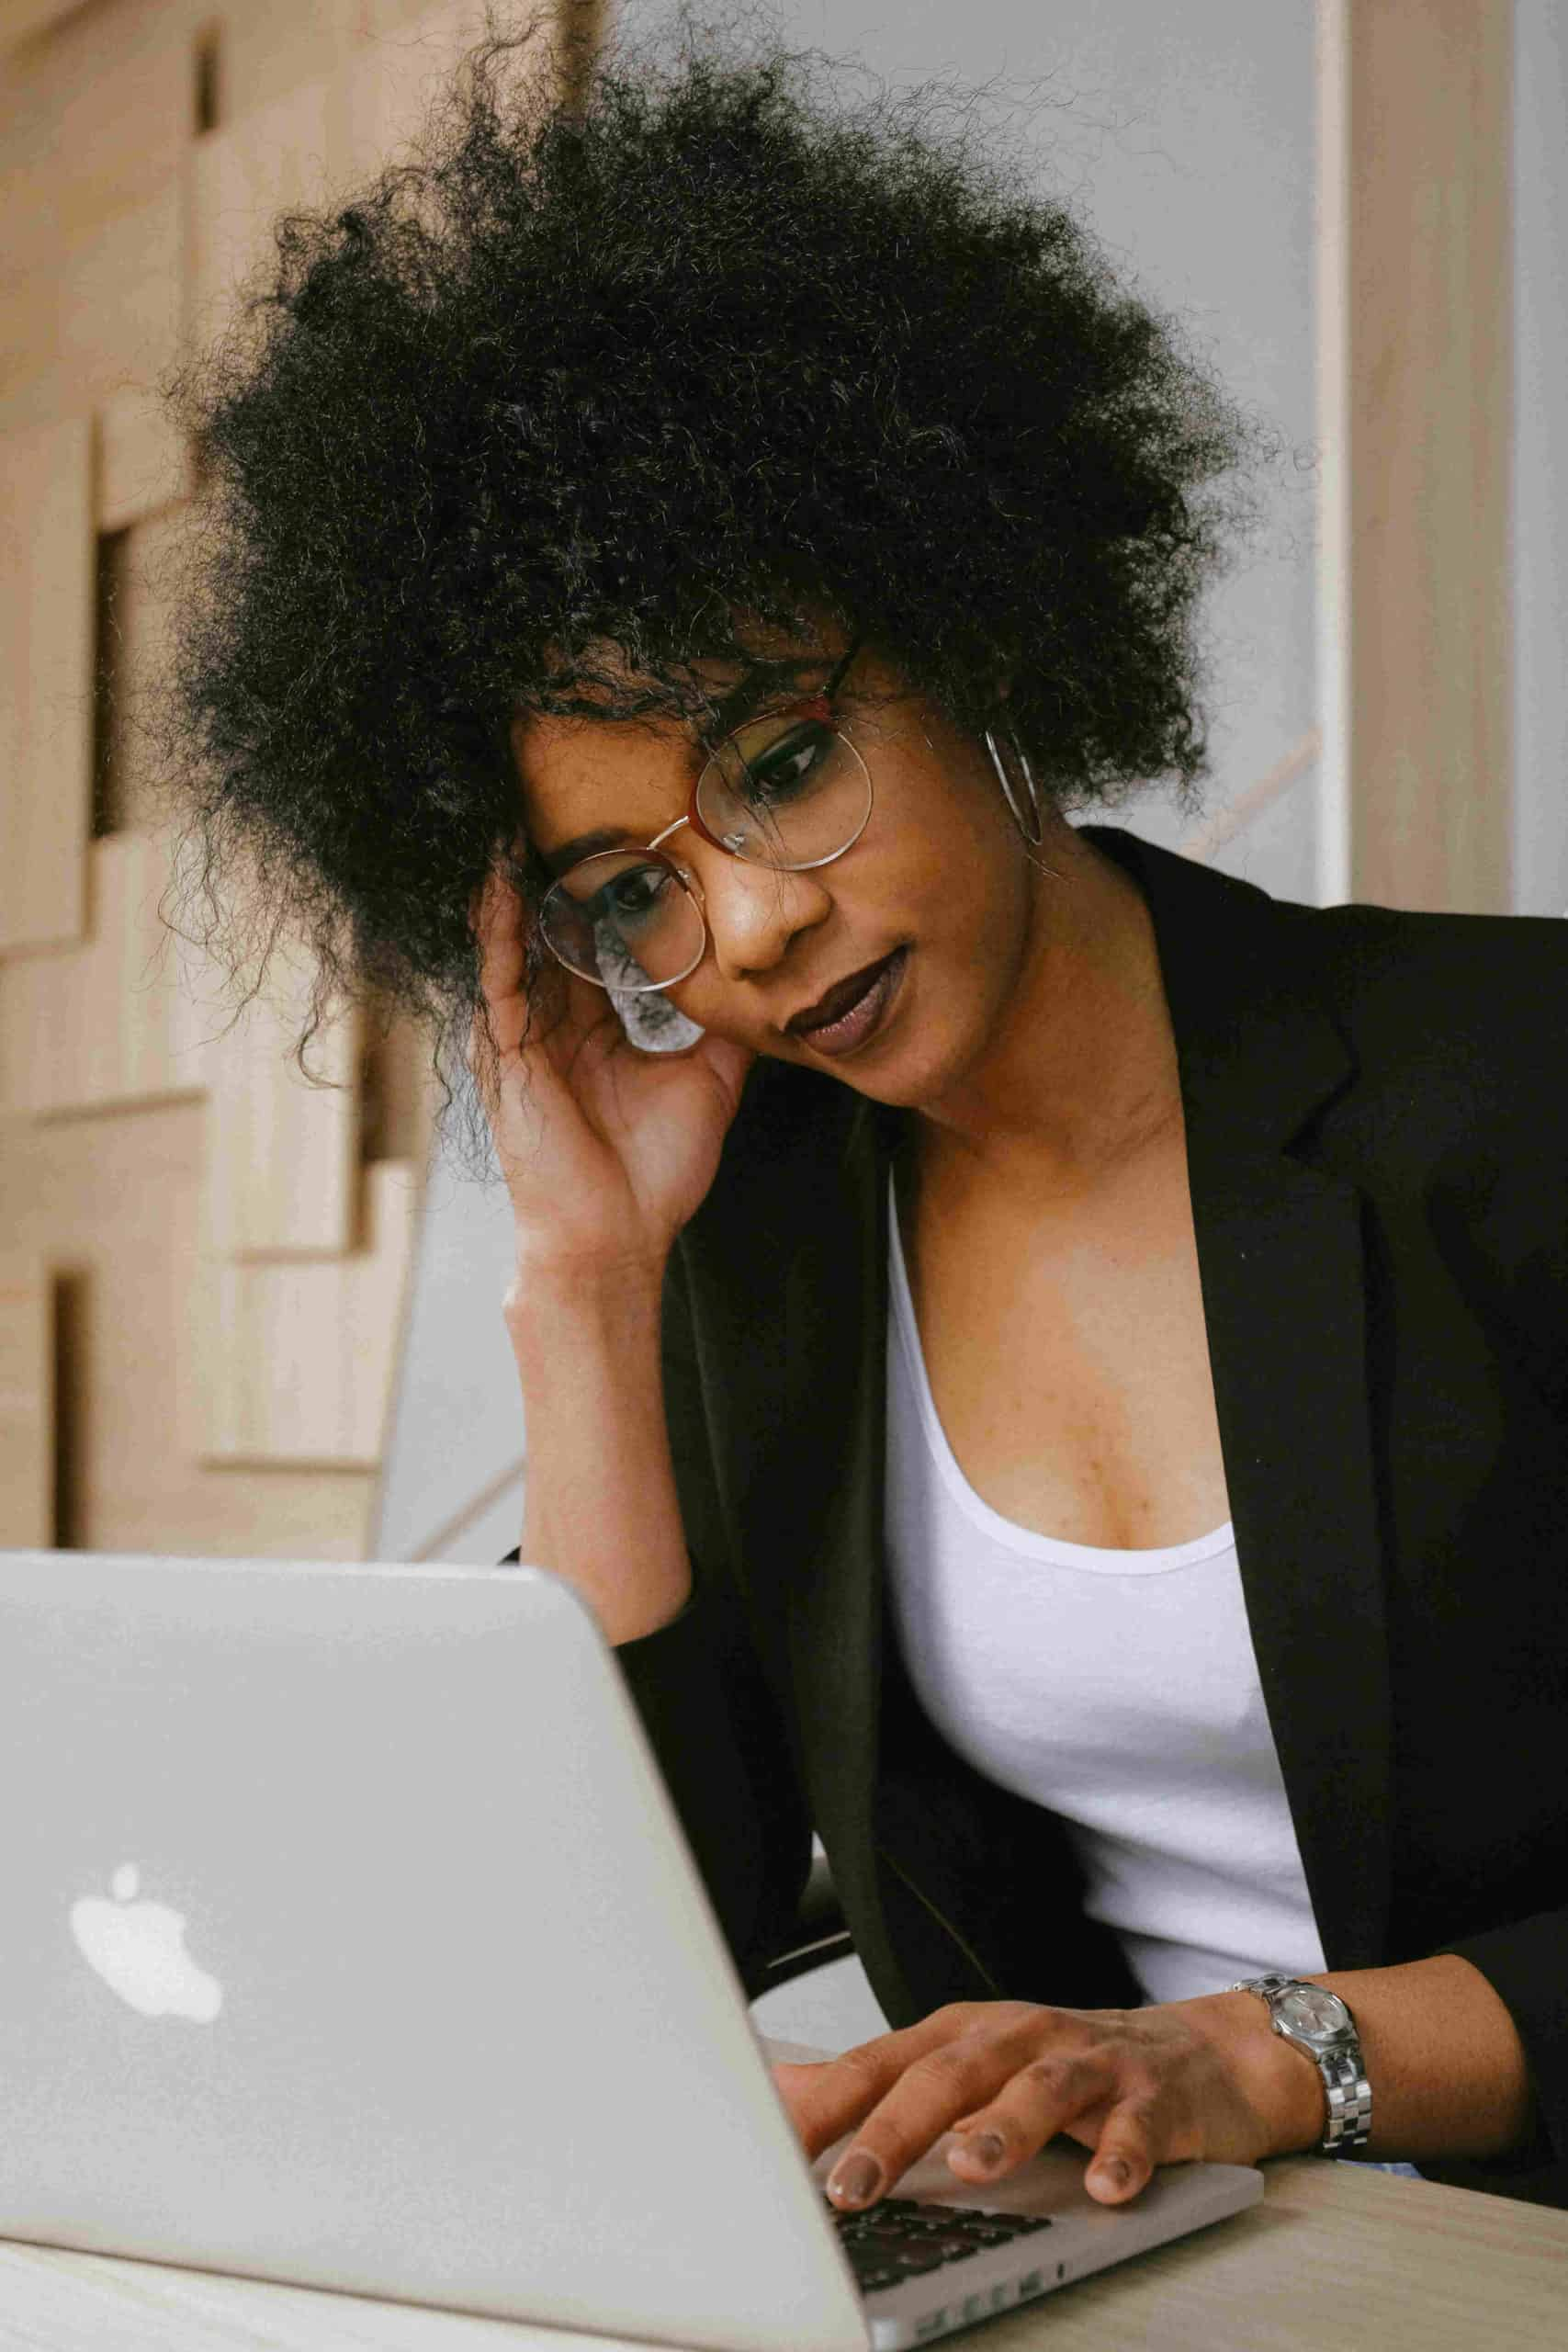 lady with afro working on laptop